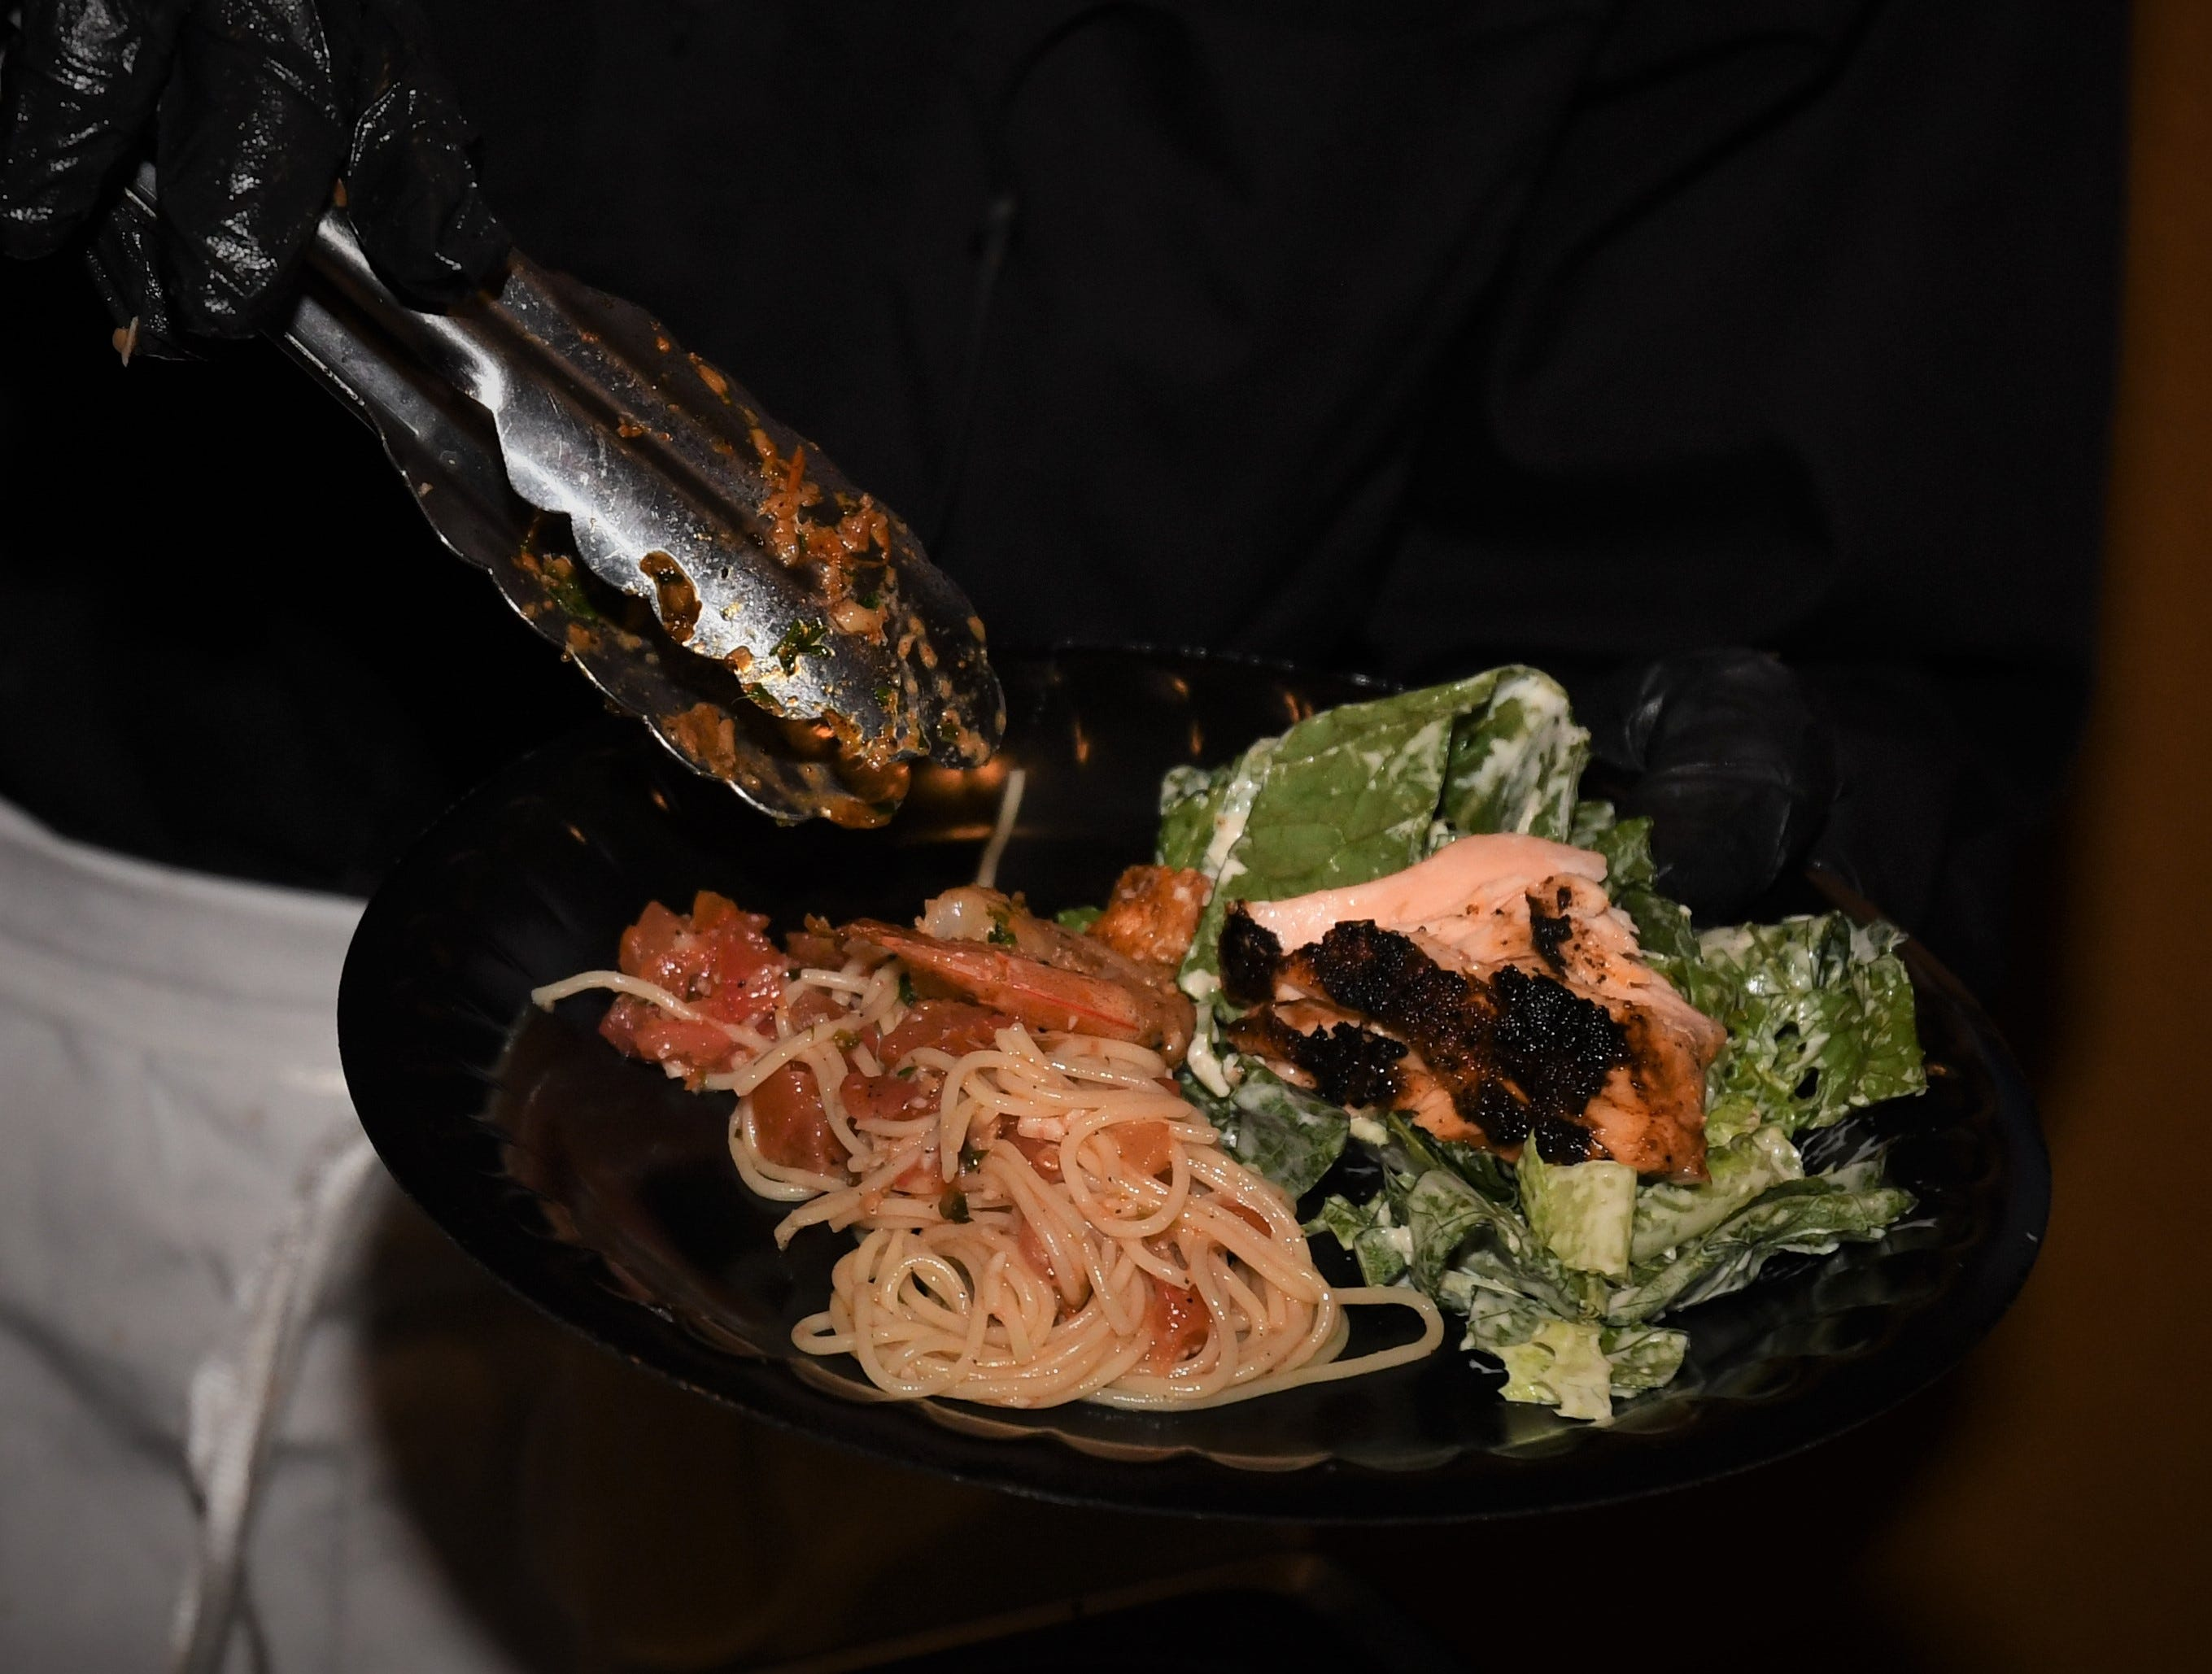 Seafood reigned at Cafe 225's Taste showing this year, with shrimp and salmon on a bed of linguine and romaine.